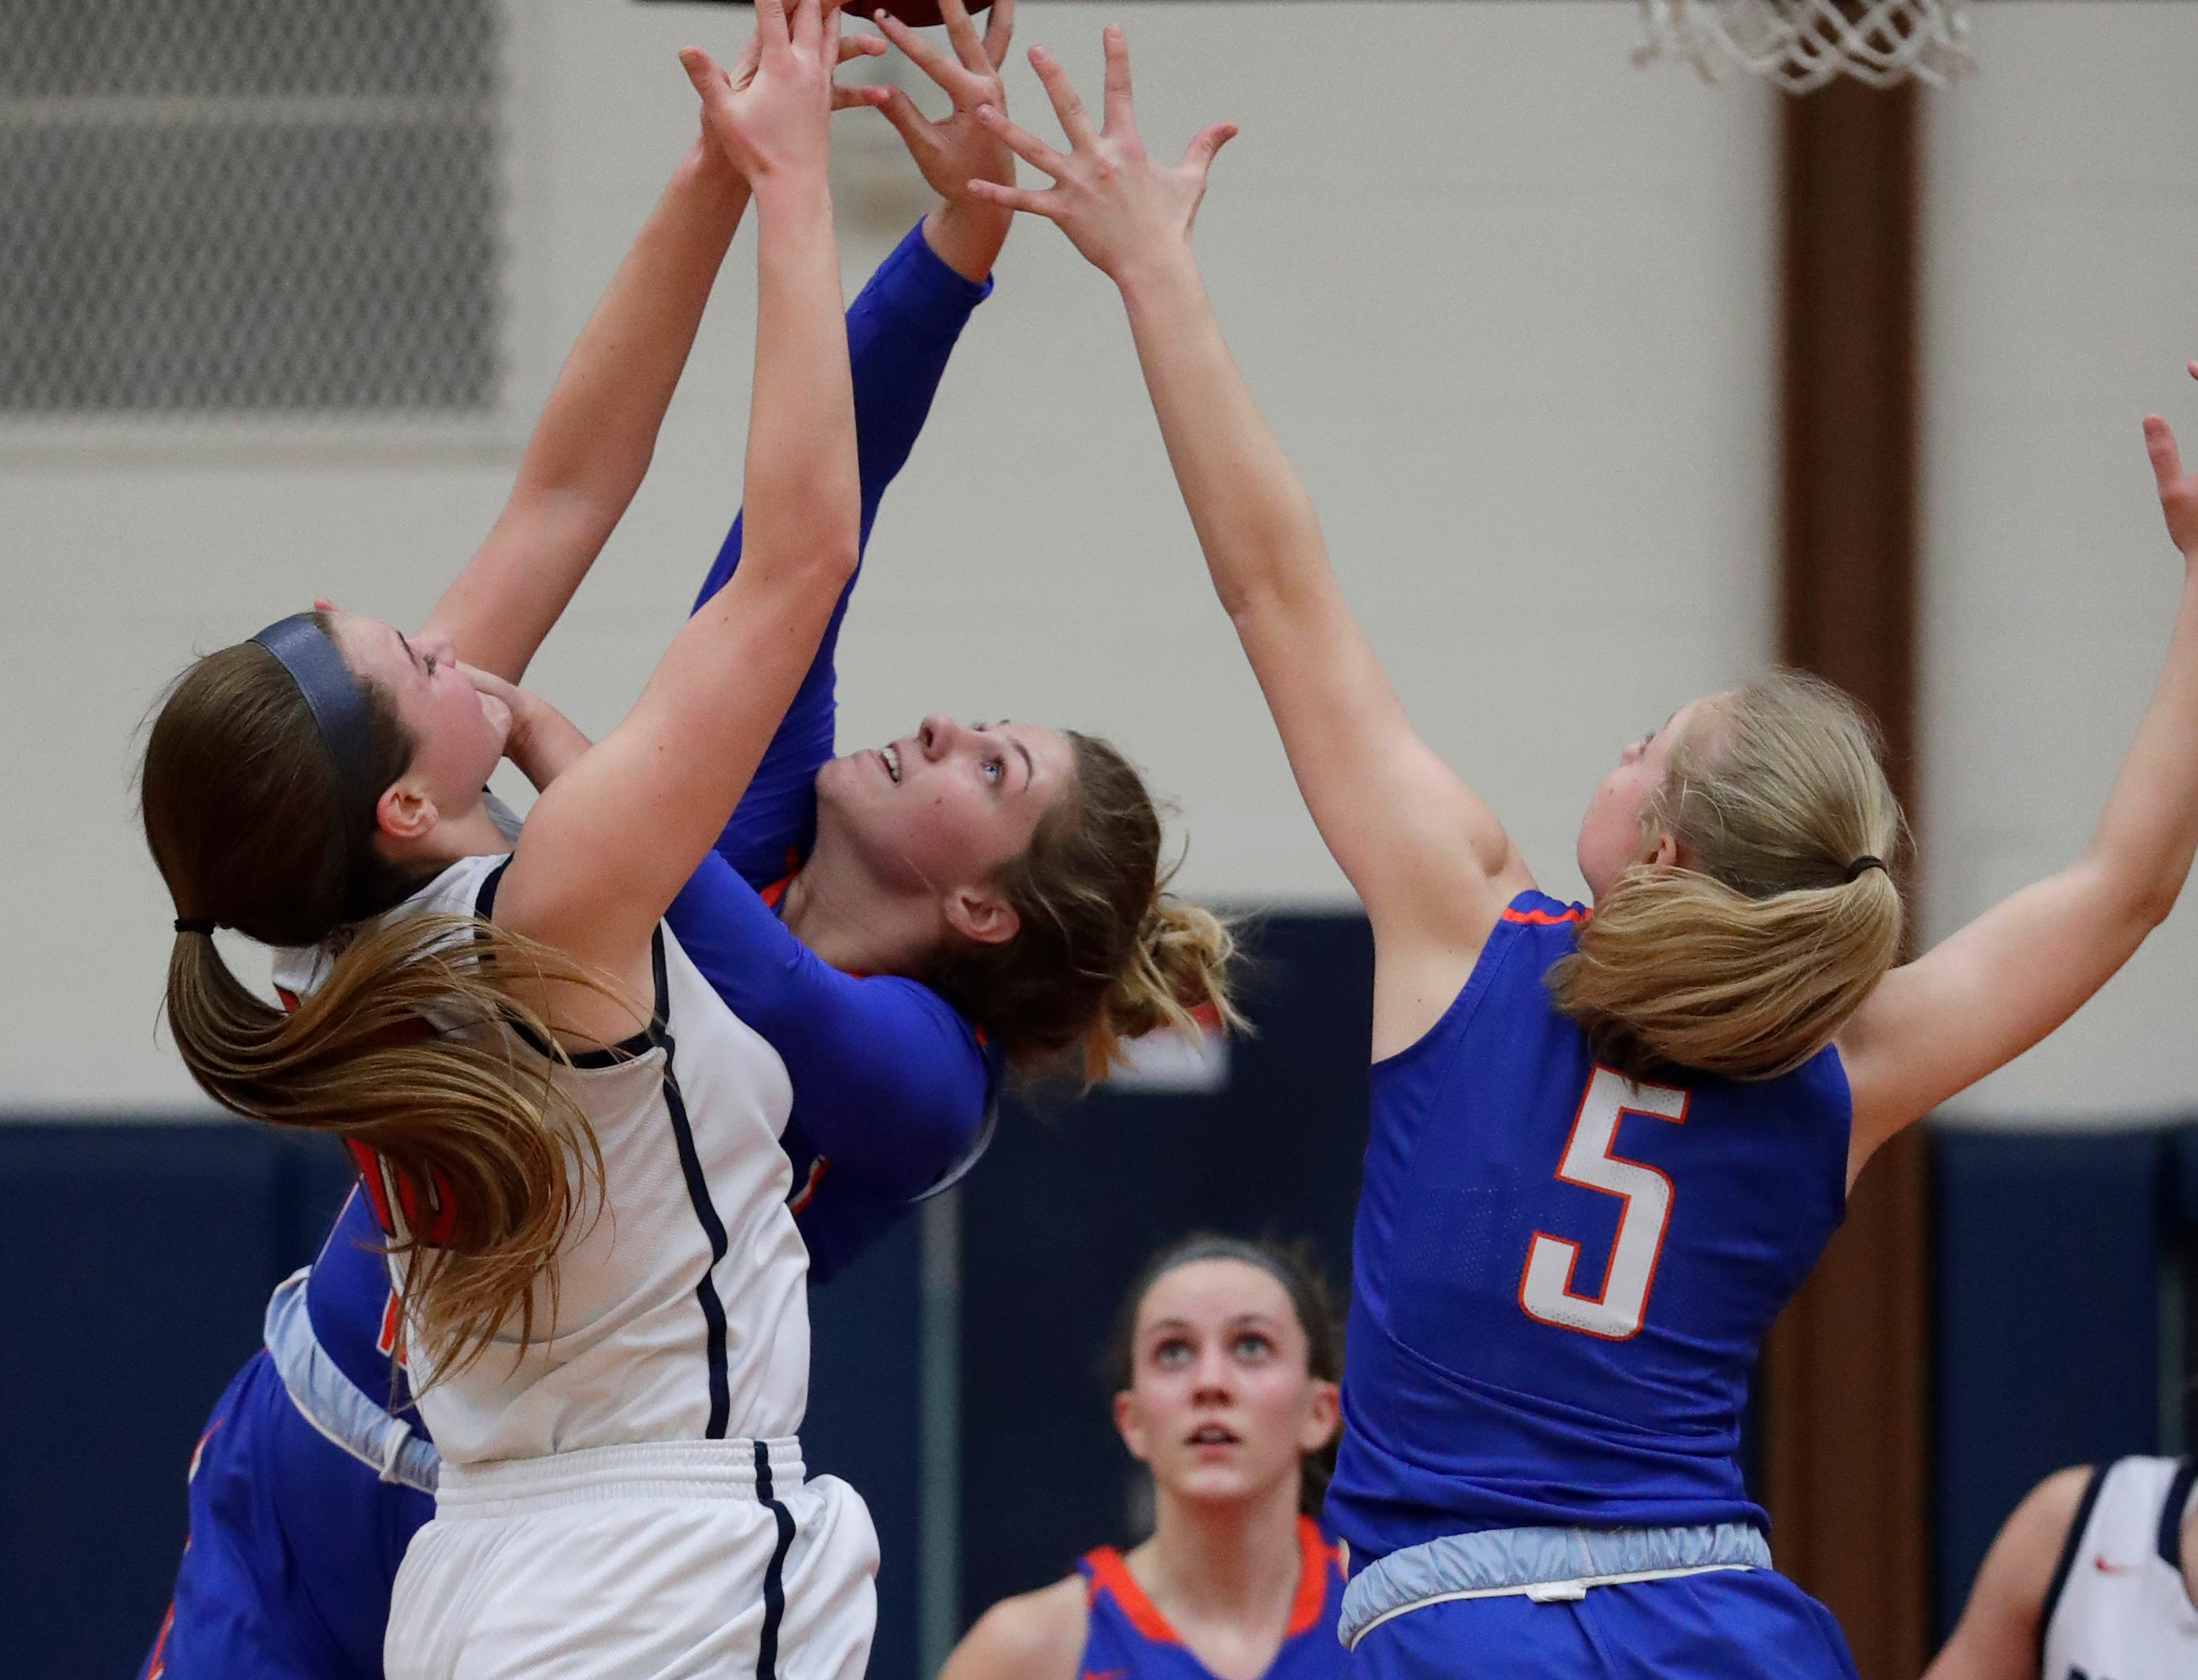 Appleton East High School's Abbie King (40) goes up for a rebound against Appleton West High School's Jenna Hoffman (43) and Bree Workman (5) during their girls basketball game Friday, January 11, 2019, at Appleton East High School in Appleton, Wis. 